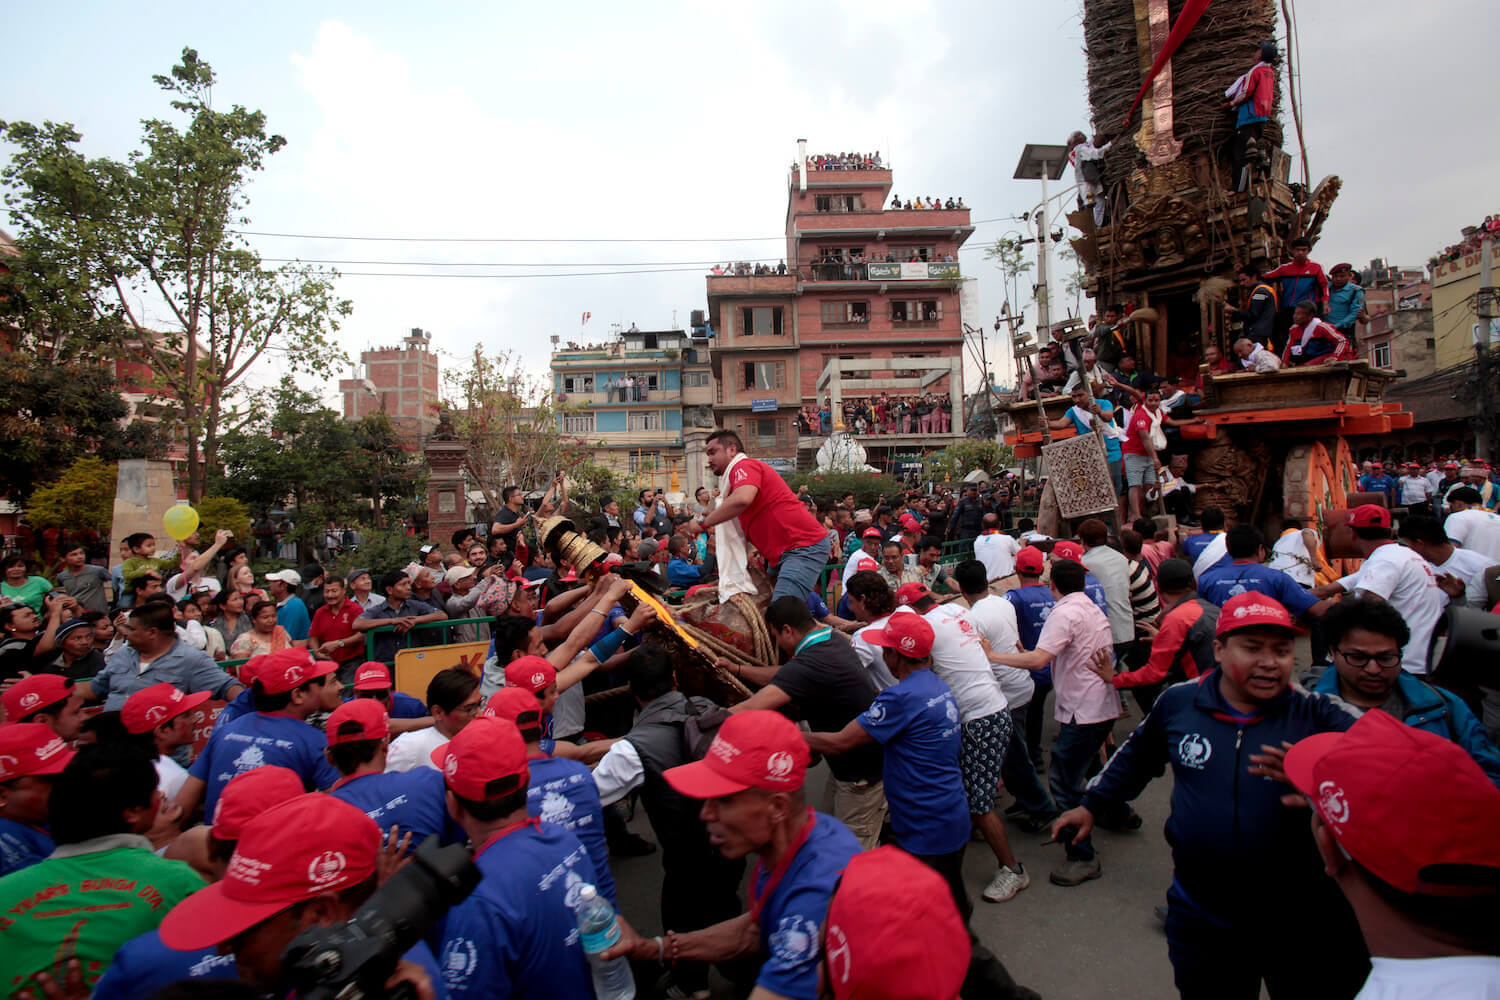 Devotee pull the Chariot of the rain god Rato Machhindranath in Lalitpur on Thursday. Today marks the beginning of the annual Rato Machhindranath Festival in Patan.